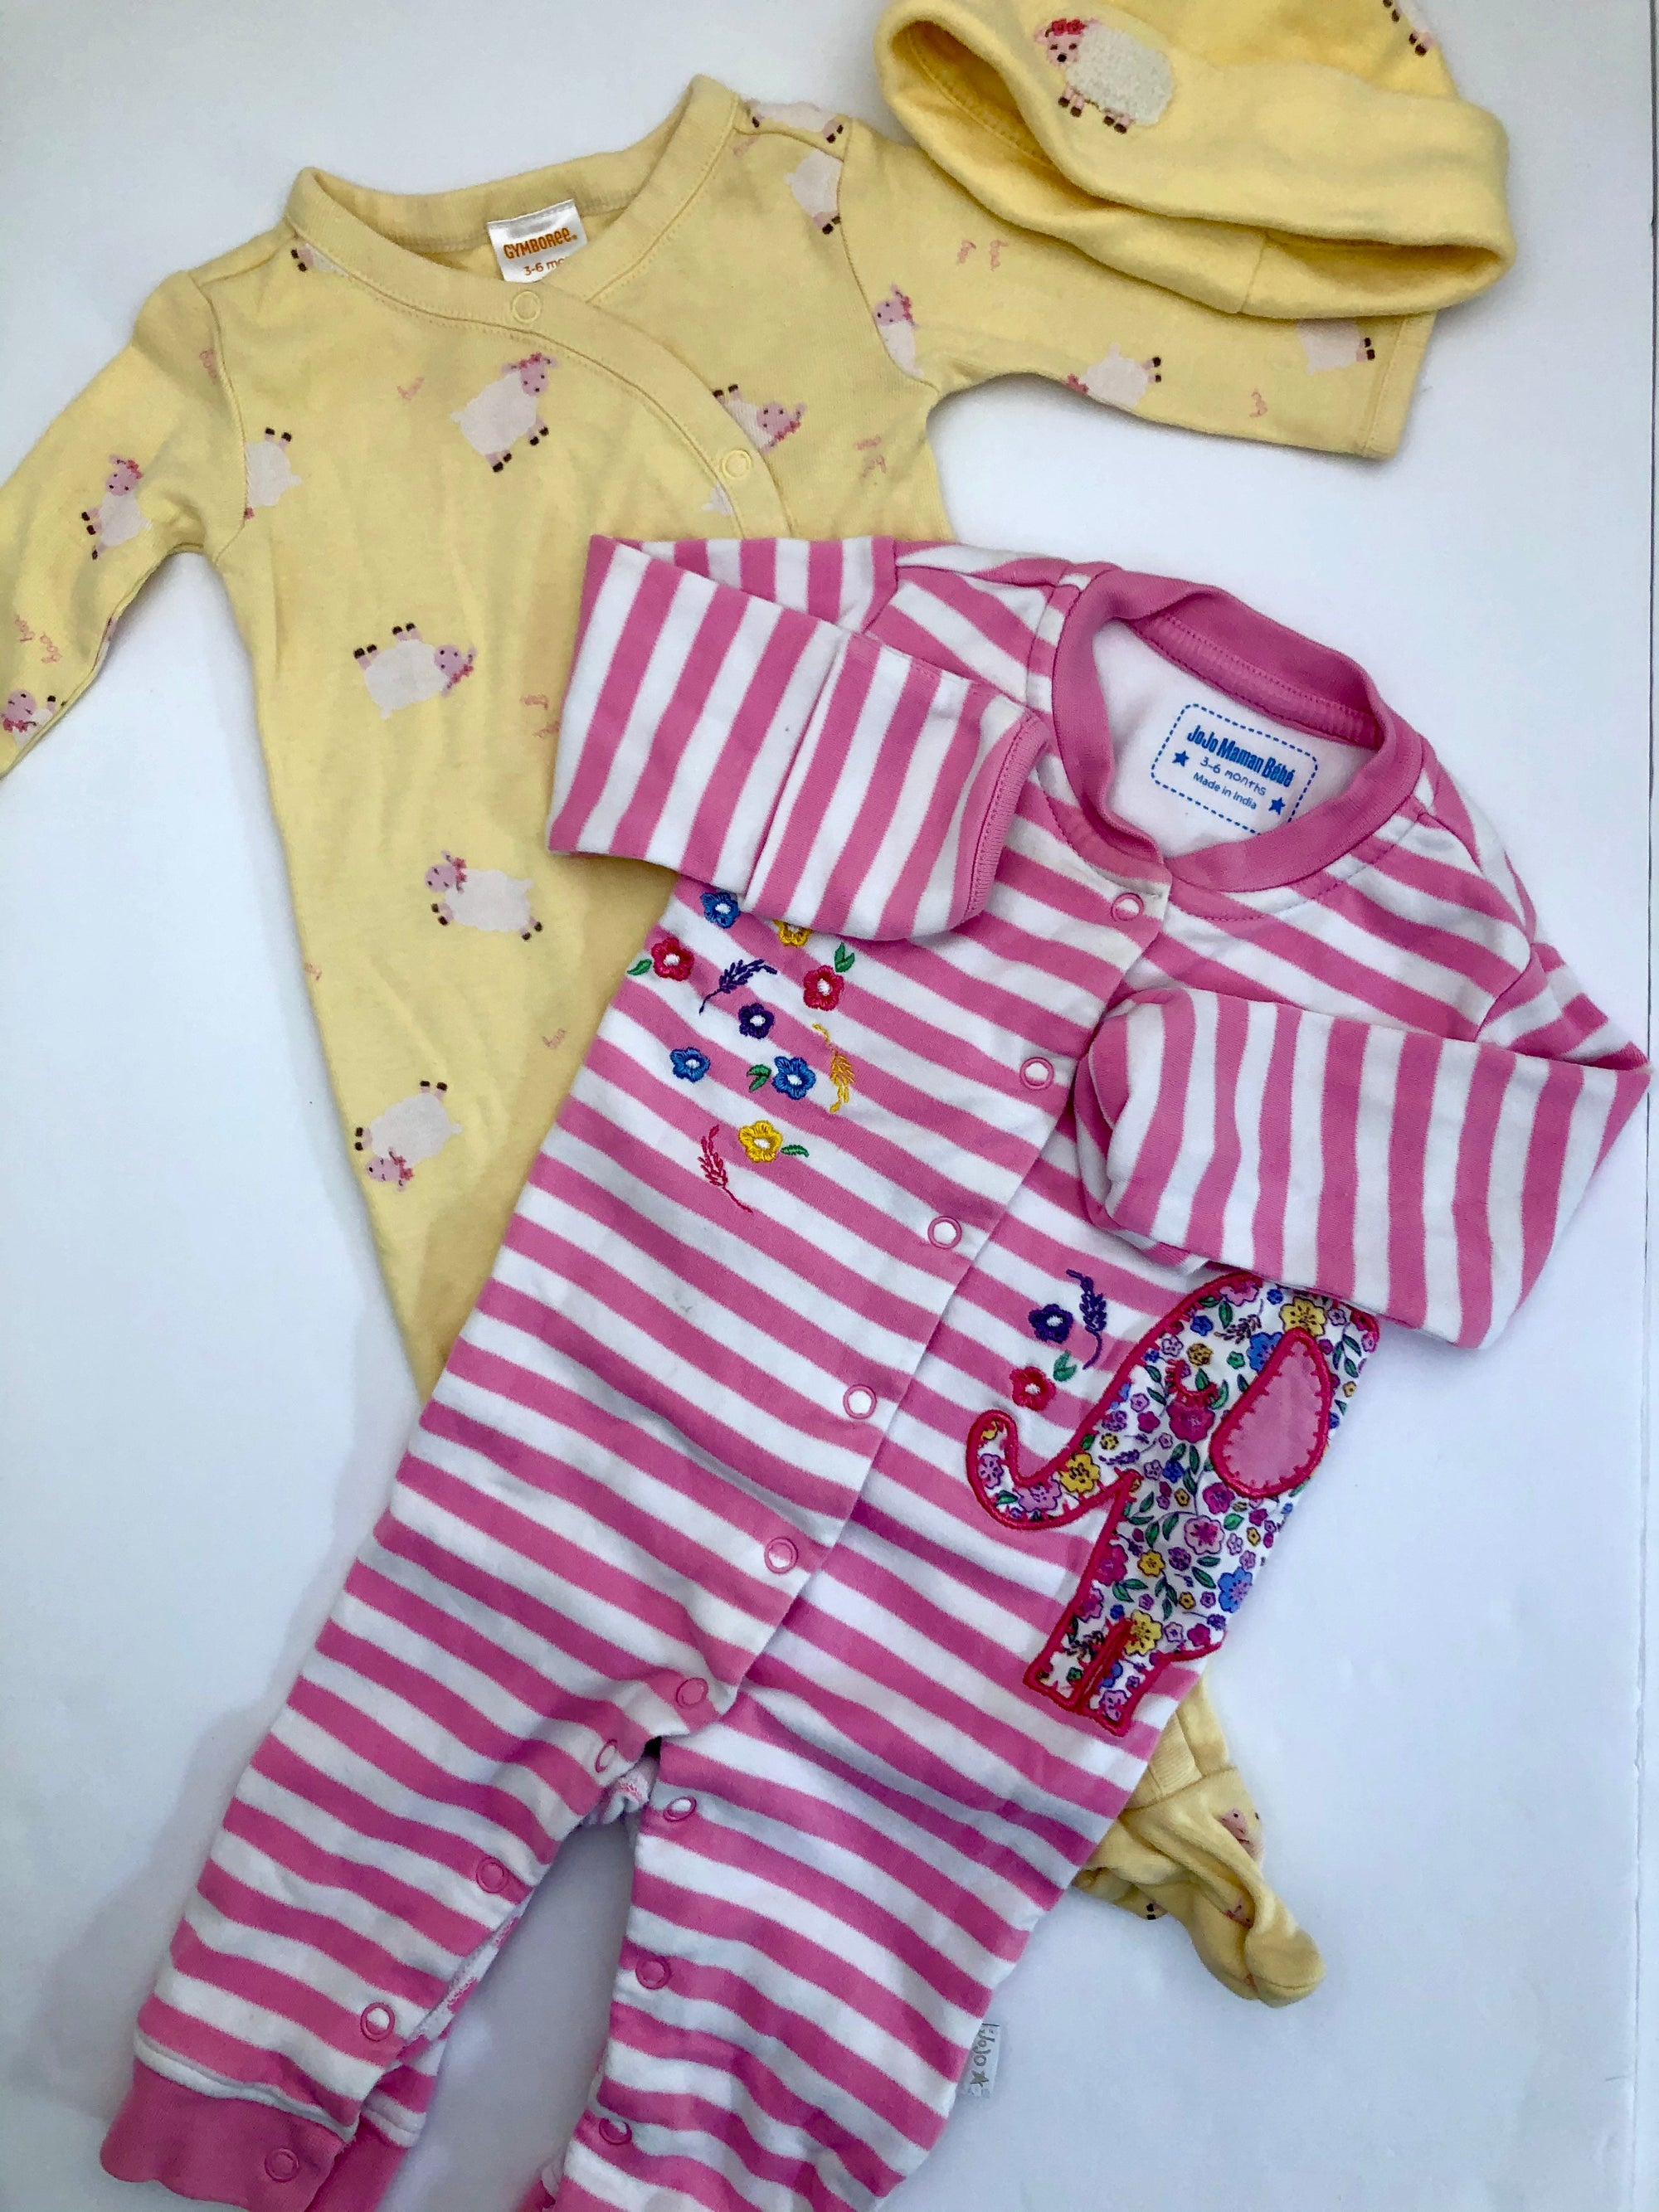 Resale 3-6 m Gymboree Yellow Sheep Footie Sleeper and Jojo Maman Bebe Pink Stripe Floral Footless Romper